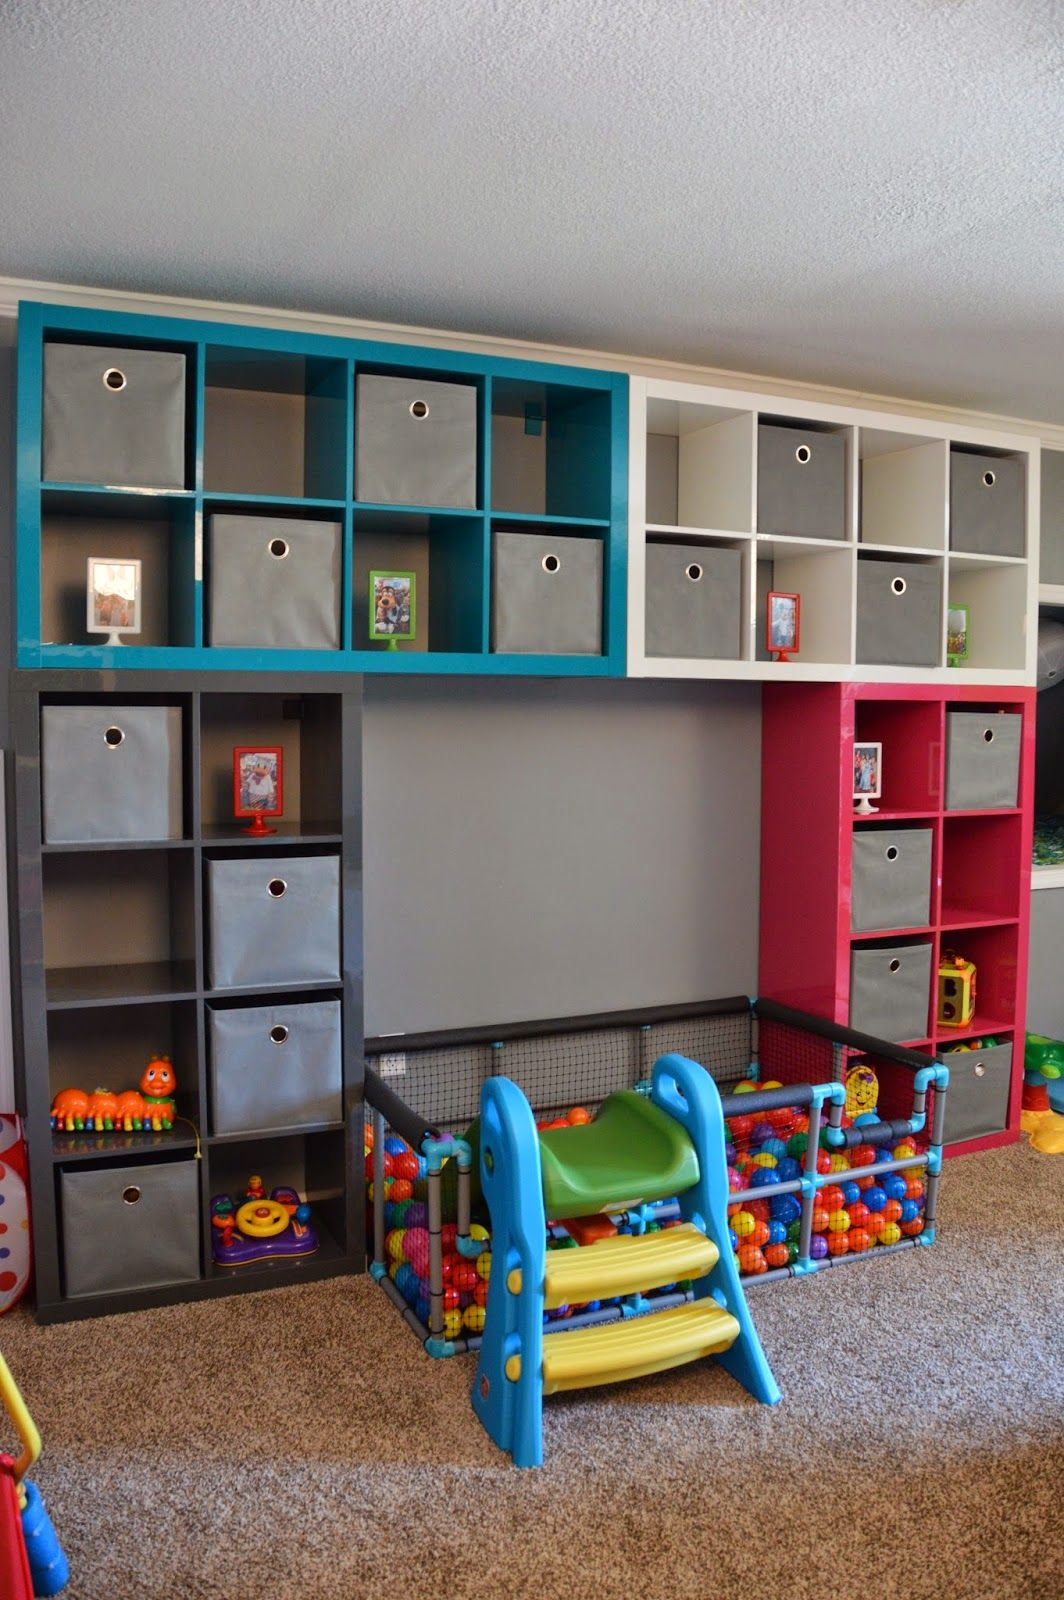 Boys Playroom Ideas 7 431 Toy Storage Ideas Diy Plans In A Small Space Your